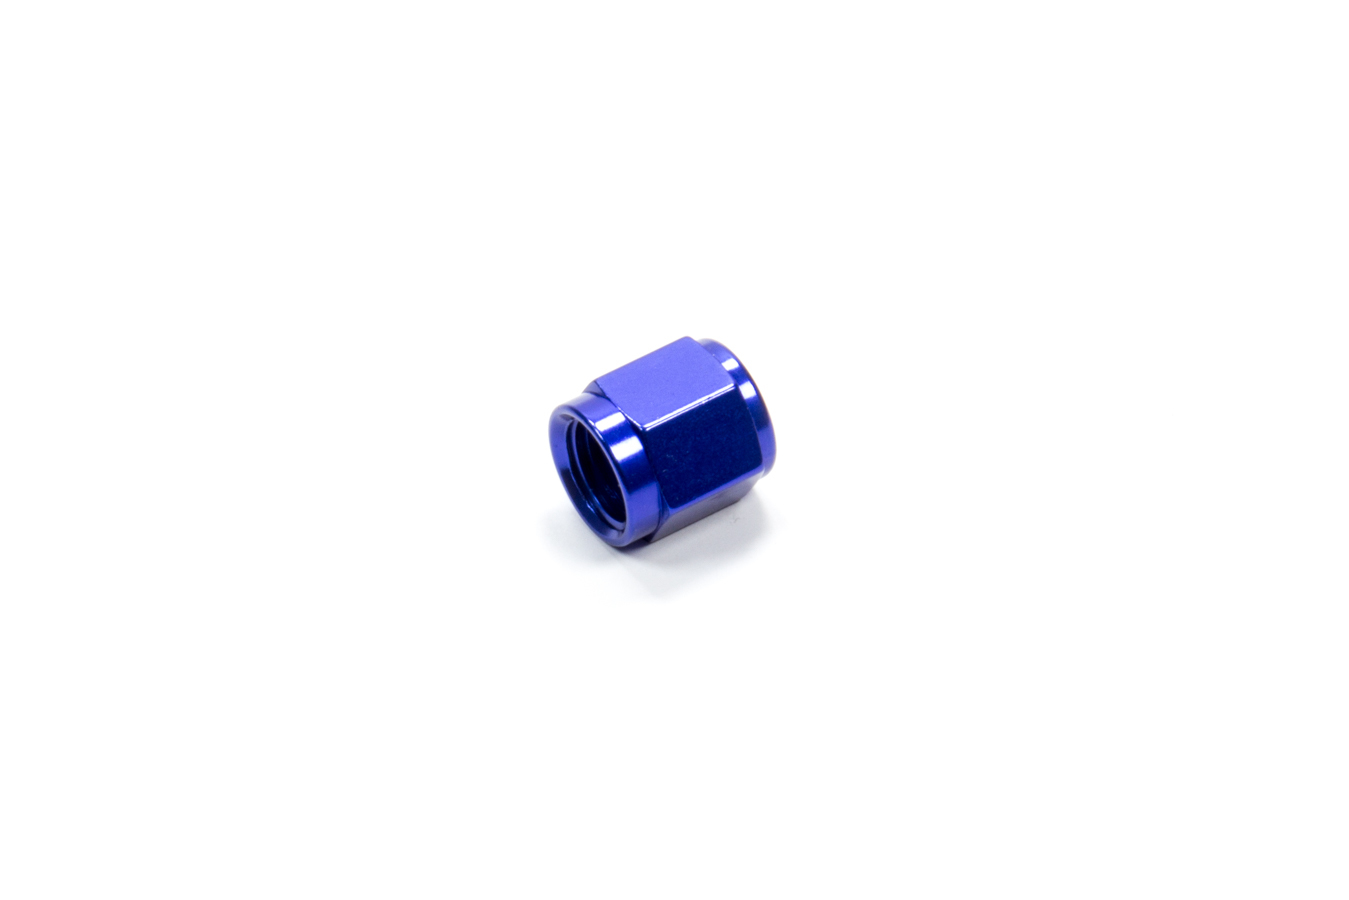 Fragola 492904 Fitting, Cap, 4 AN, Aluminum, Blue Anodize, Each